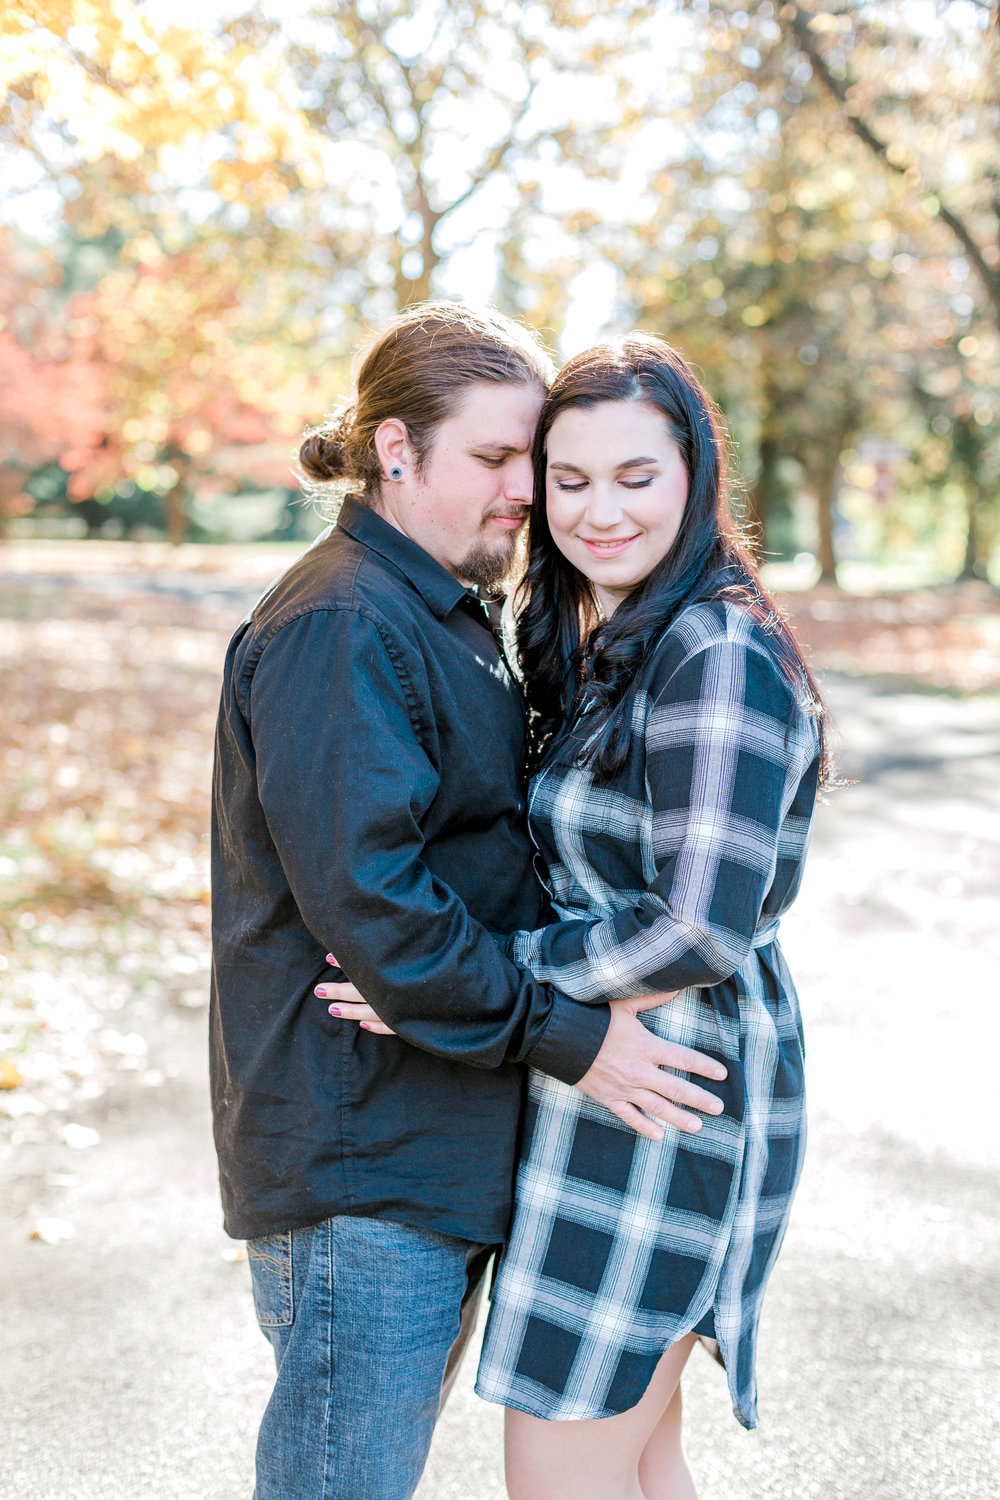 Collingswood New Jersey Fall Engagement Session Lehigh Valley wedding and lifestyle photographer Lytle Photo Co (77 of 95).jpg